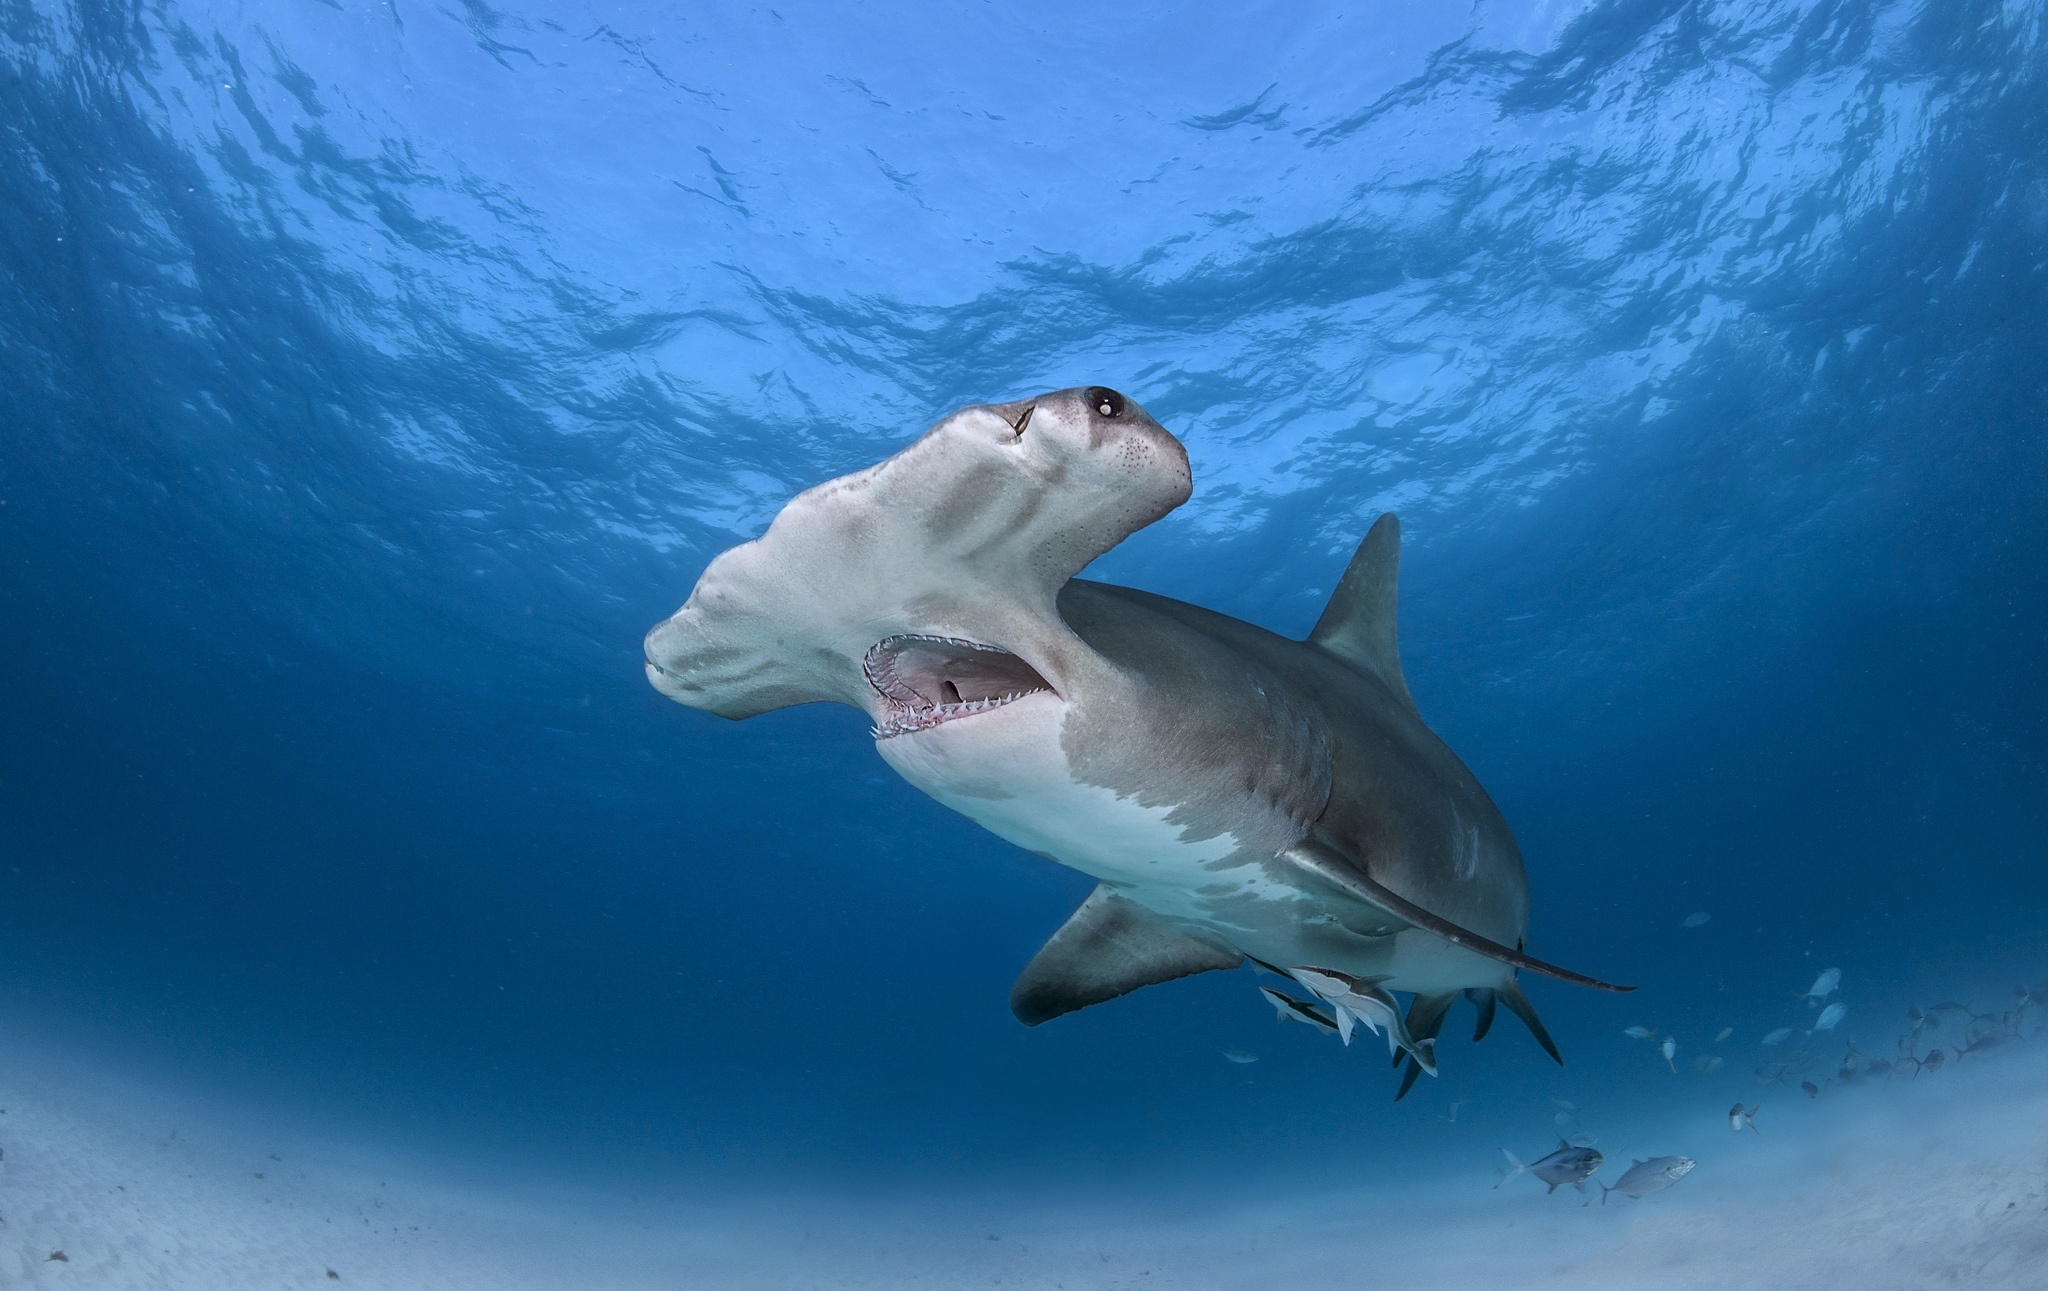 great hammerhead shark pictures - HD2048×1291